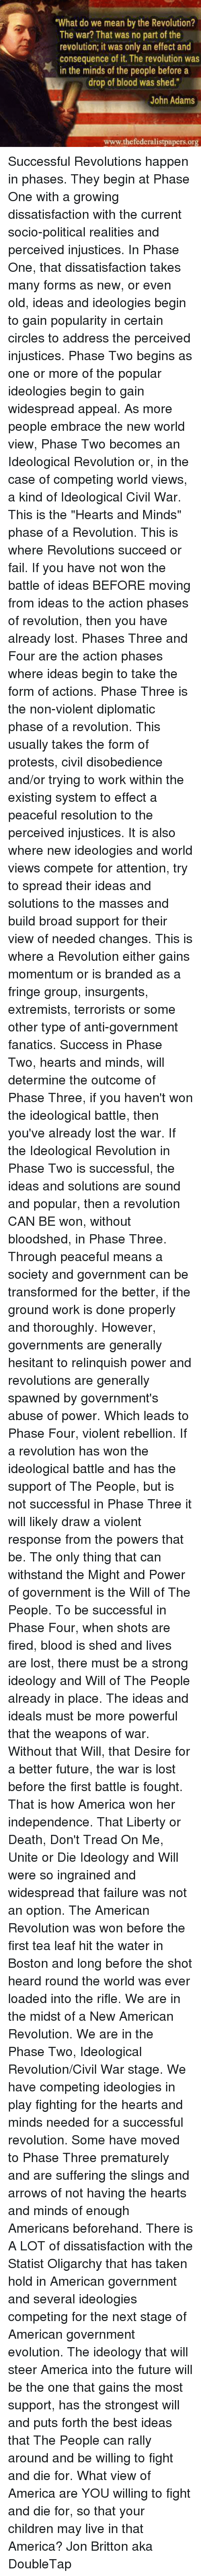 """Withstanded: """"What do we mean by the Revolution?  The war? That was no part of the  revolution; it was only an effect and  consequence of it. The revolution was  in the minds of the people before a  drop of blood was shed.""""  John Adams  www.the federalistpapers.org Successful Revolutions happen in phases.  They begin at Phase One with a growing dissatisfaction with the current socio-political realities and perceived injustices. In Phase One, that dissatisfaction takes many forms as new, or even old, ideas and ideologies begin to gain popularity in certain circles to address the perceived injustices.  Phase Two begins as one or more of the popular ideologies begin to gain widespread appeal. As more people embrace the new world view, Phase Two becomes an Ideological  Revolution or, in the case of competing world views, a kind of Ideological Civil War. This is the """"Hearts and Minds"""" phase of a Revolution. This is where Revolutions succeed or fail. If you have not won the battle of ideas BEFORE moving from ideas to the action phases of revolution, then you have already lost.  Phases Three and Four are the action phases where ideas begin to take the form of actions.  Phase Three is the non-violent diplomatic phase of a revolution. This usually takes the form of protests, civil disobedience and/or trying to work within the existing system to effect a peaceful resolution to the perceived injustices. It is also where new ideologies and world views compete for attention, try to spread their ideas and solutions to the masses and build broad support for their view of needed changes. This is where a Revolution either gains momentum or is branded as a fringe group, insurgents, extremists, terrorists or some other type of anti-government fanatics. Success in Phase Two, hearts and minds, will determine the outcome of Phase Three, if you haven't won the ideological battle, then you've already lost the war.  If the Ideological Revolution in Phase Two is successful, the ideas and sol"""